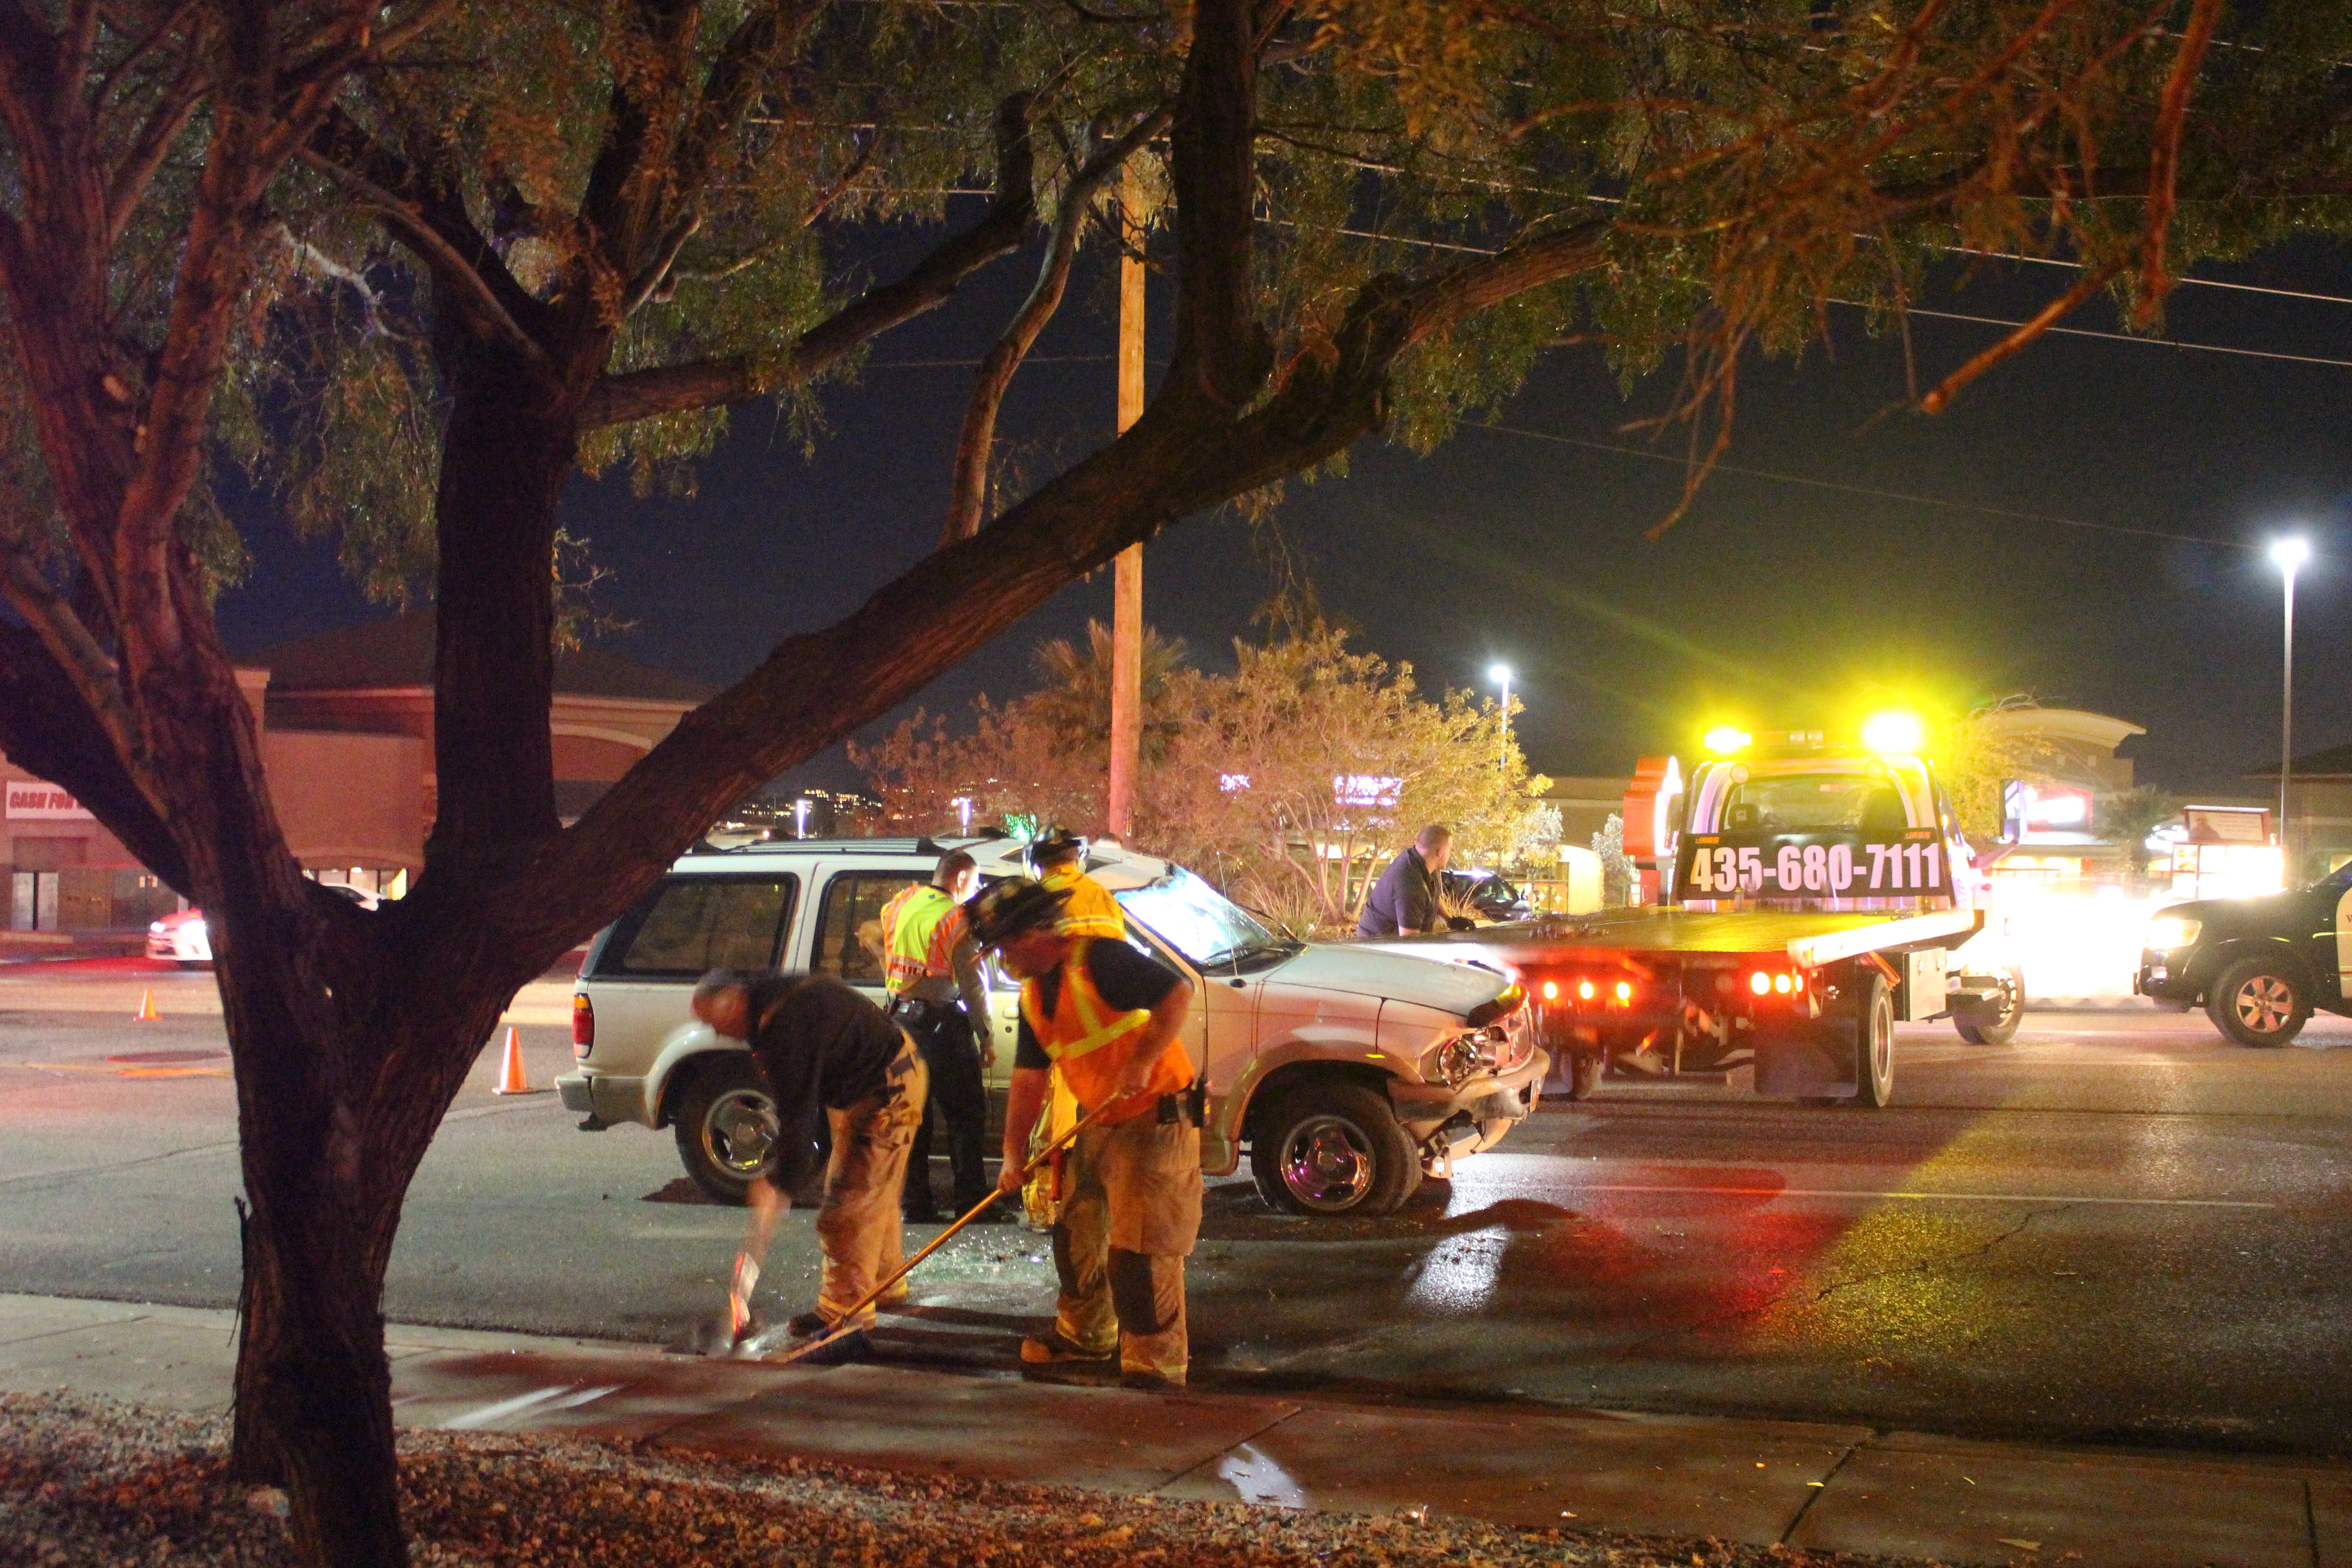 Emergency personnel respond to the scene of a rollover, Washington City, Utah, Dec. 11, 2016   Photo by Joseph Witham, St. George News